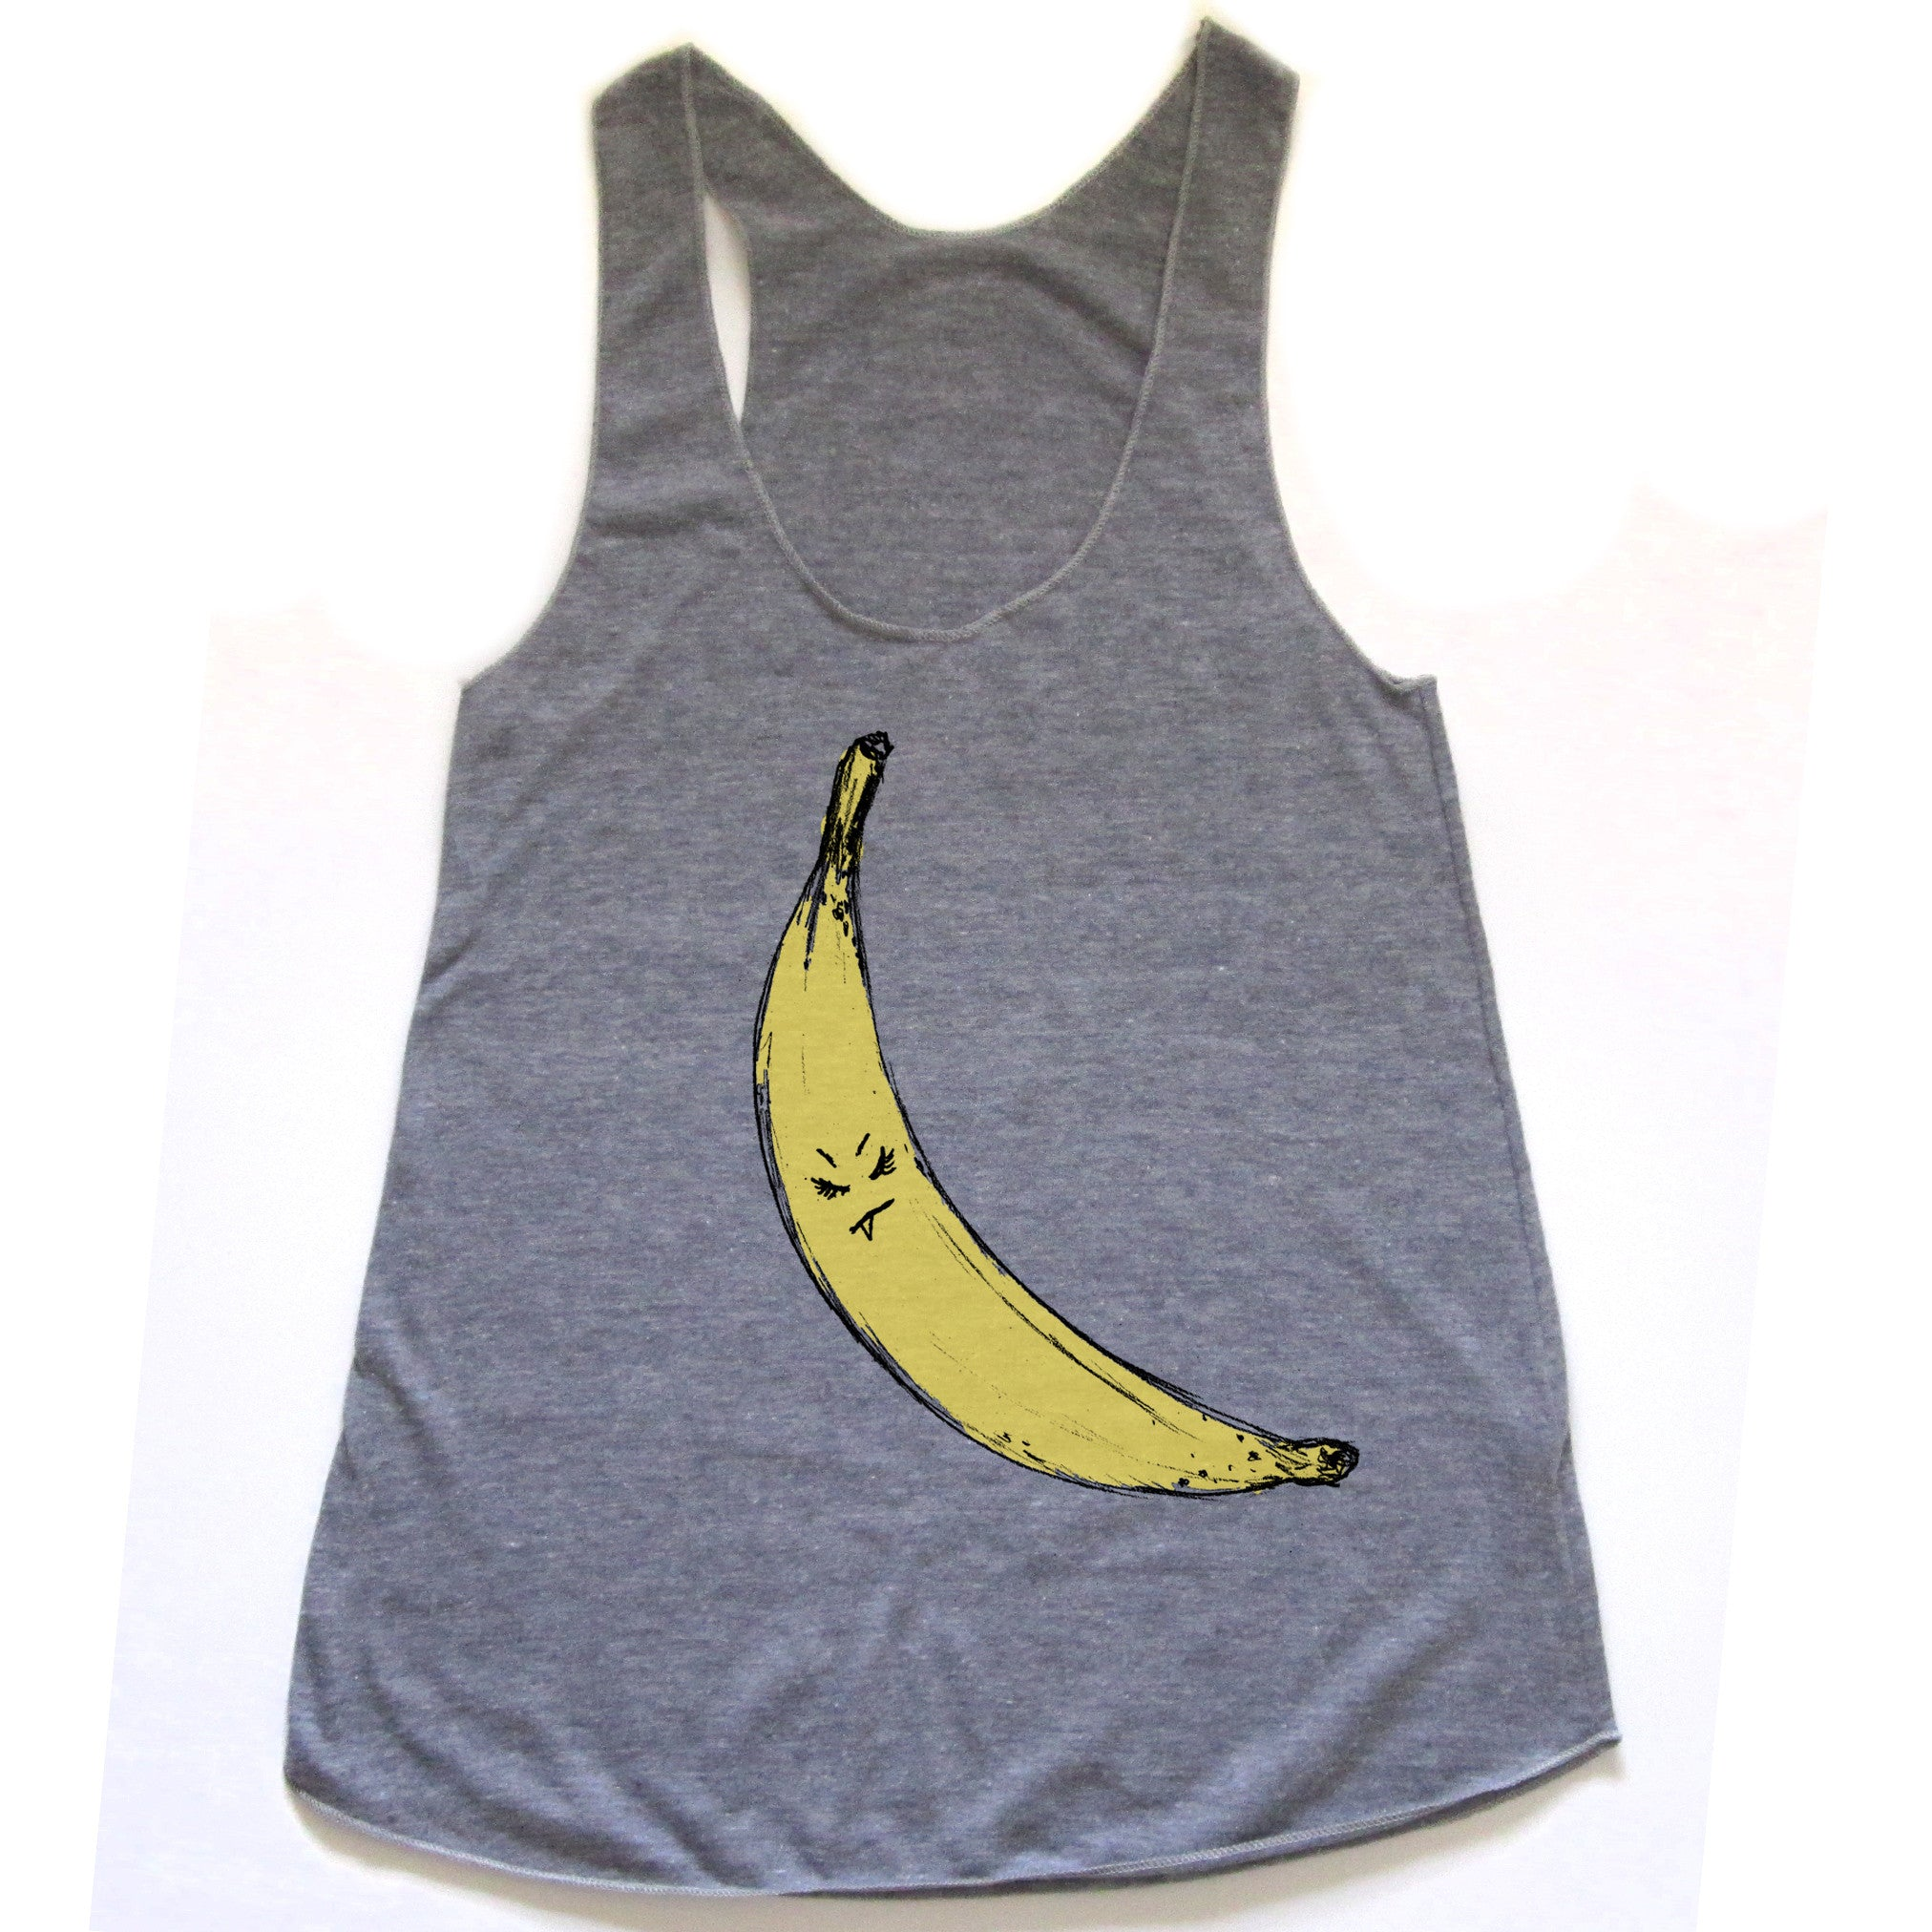 Snaggletooth Banana : women racerback tri-blend tank, Women's Apparel - Megan Lee Designs